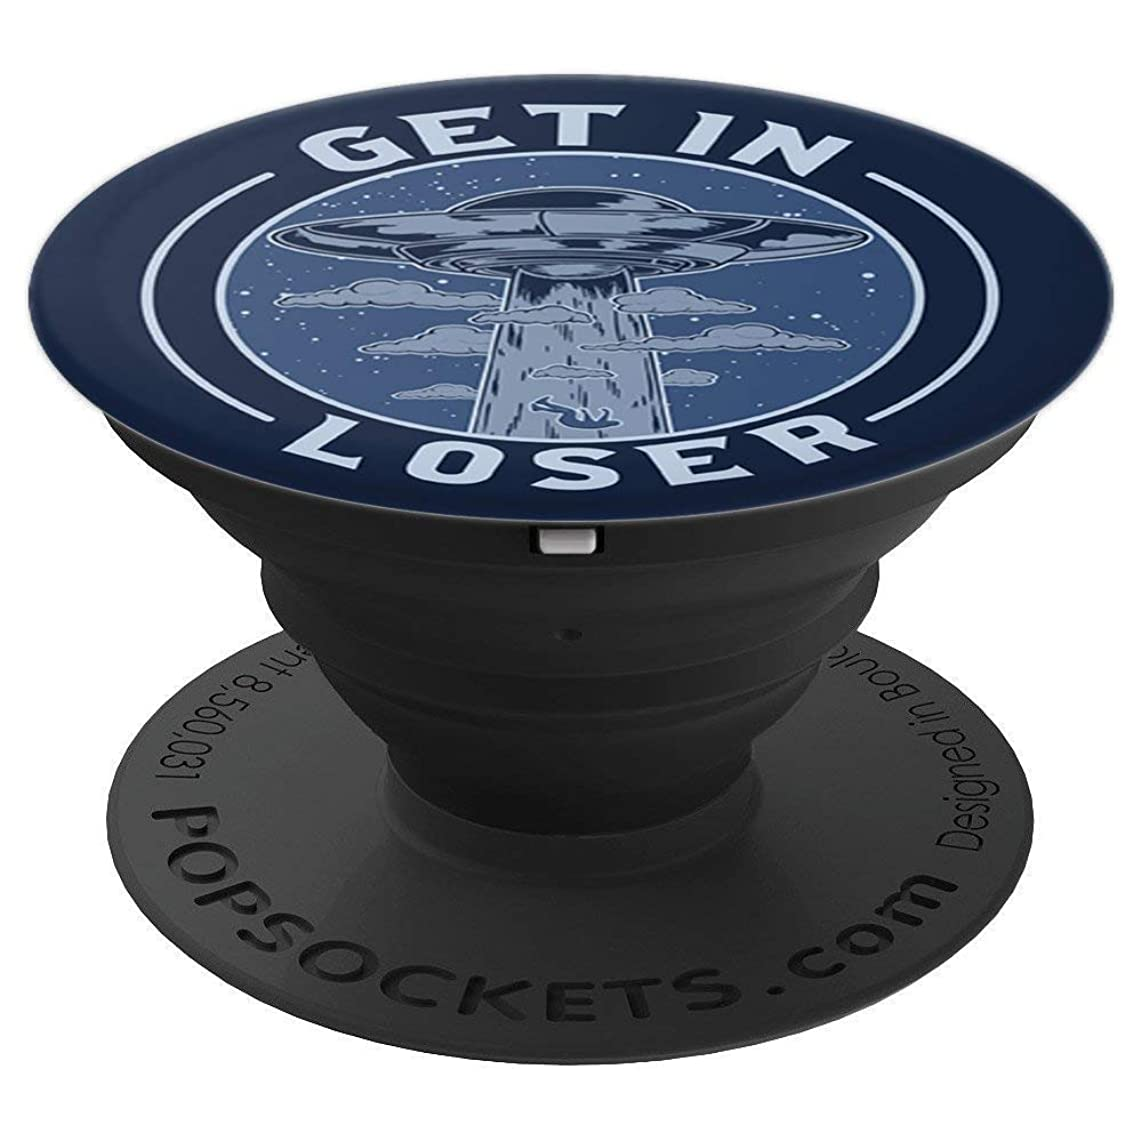 Ufo Abduction Get In Loser Funny Alien Spacecraft Gift - PopSockets Grip and Stand for Phones and Tablets